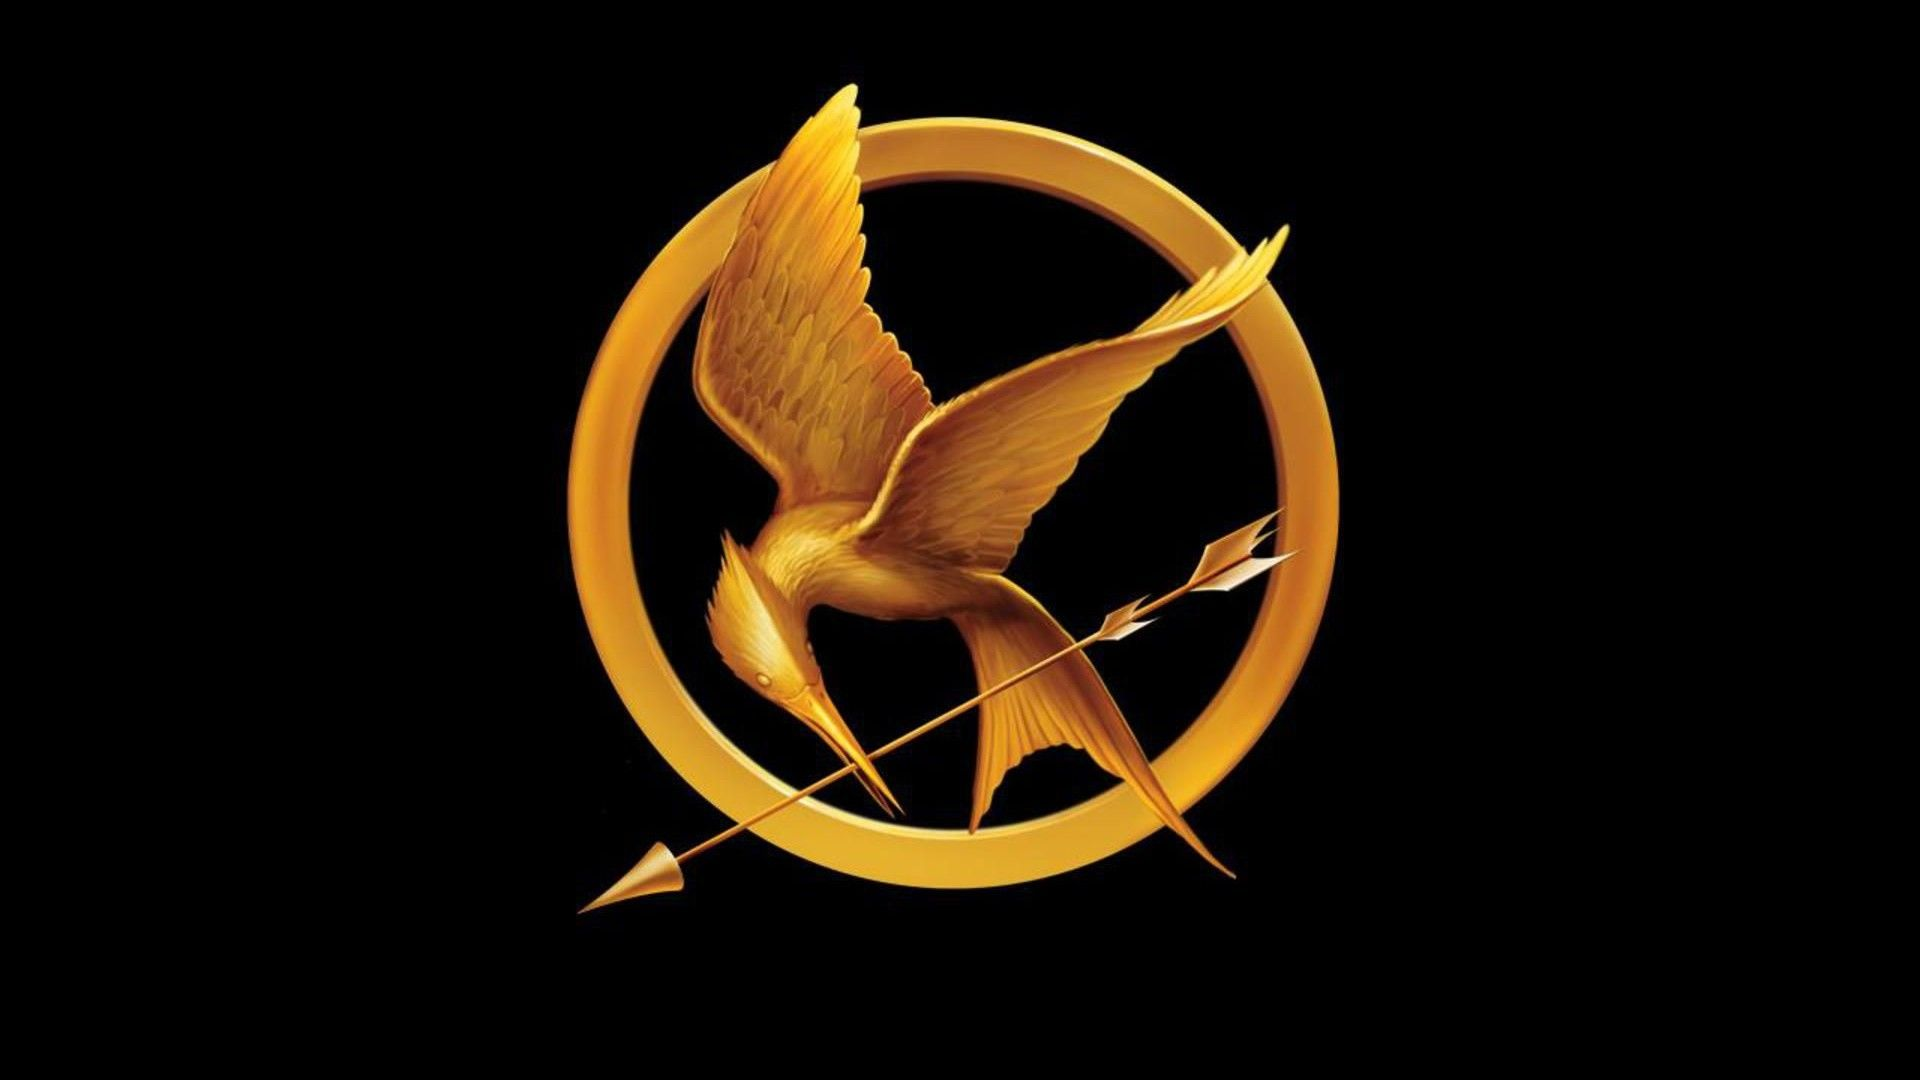 Step step08 hunger games logo How to Draw the Hunger Games ... |Hunger Games Mockingjay Pin Outline